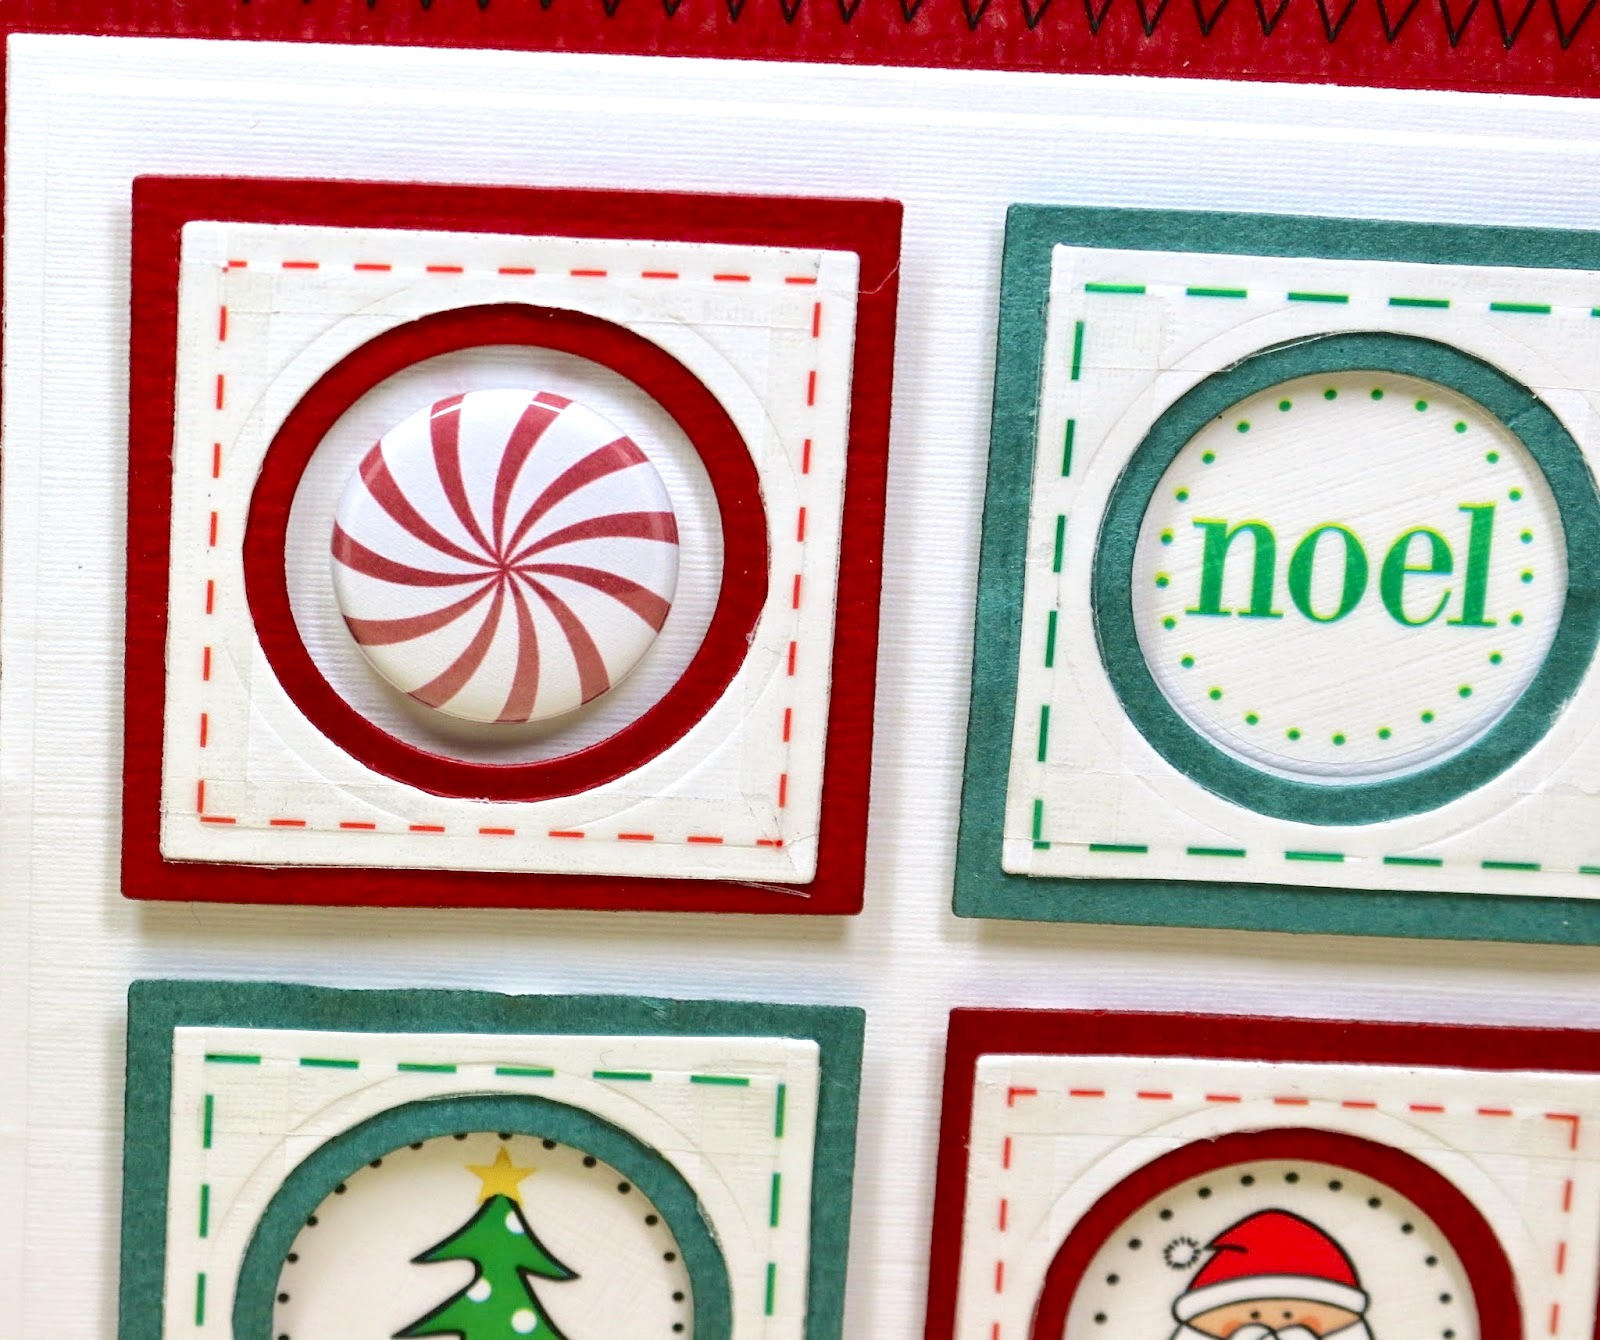 SRM Stickers Blog - A Bossy Joscie Christmas Card by Cathy A.- #srmpress #srmstickers #card #christmas #flair #bossyjoscie #stickers #stitches